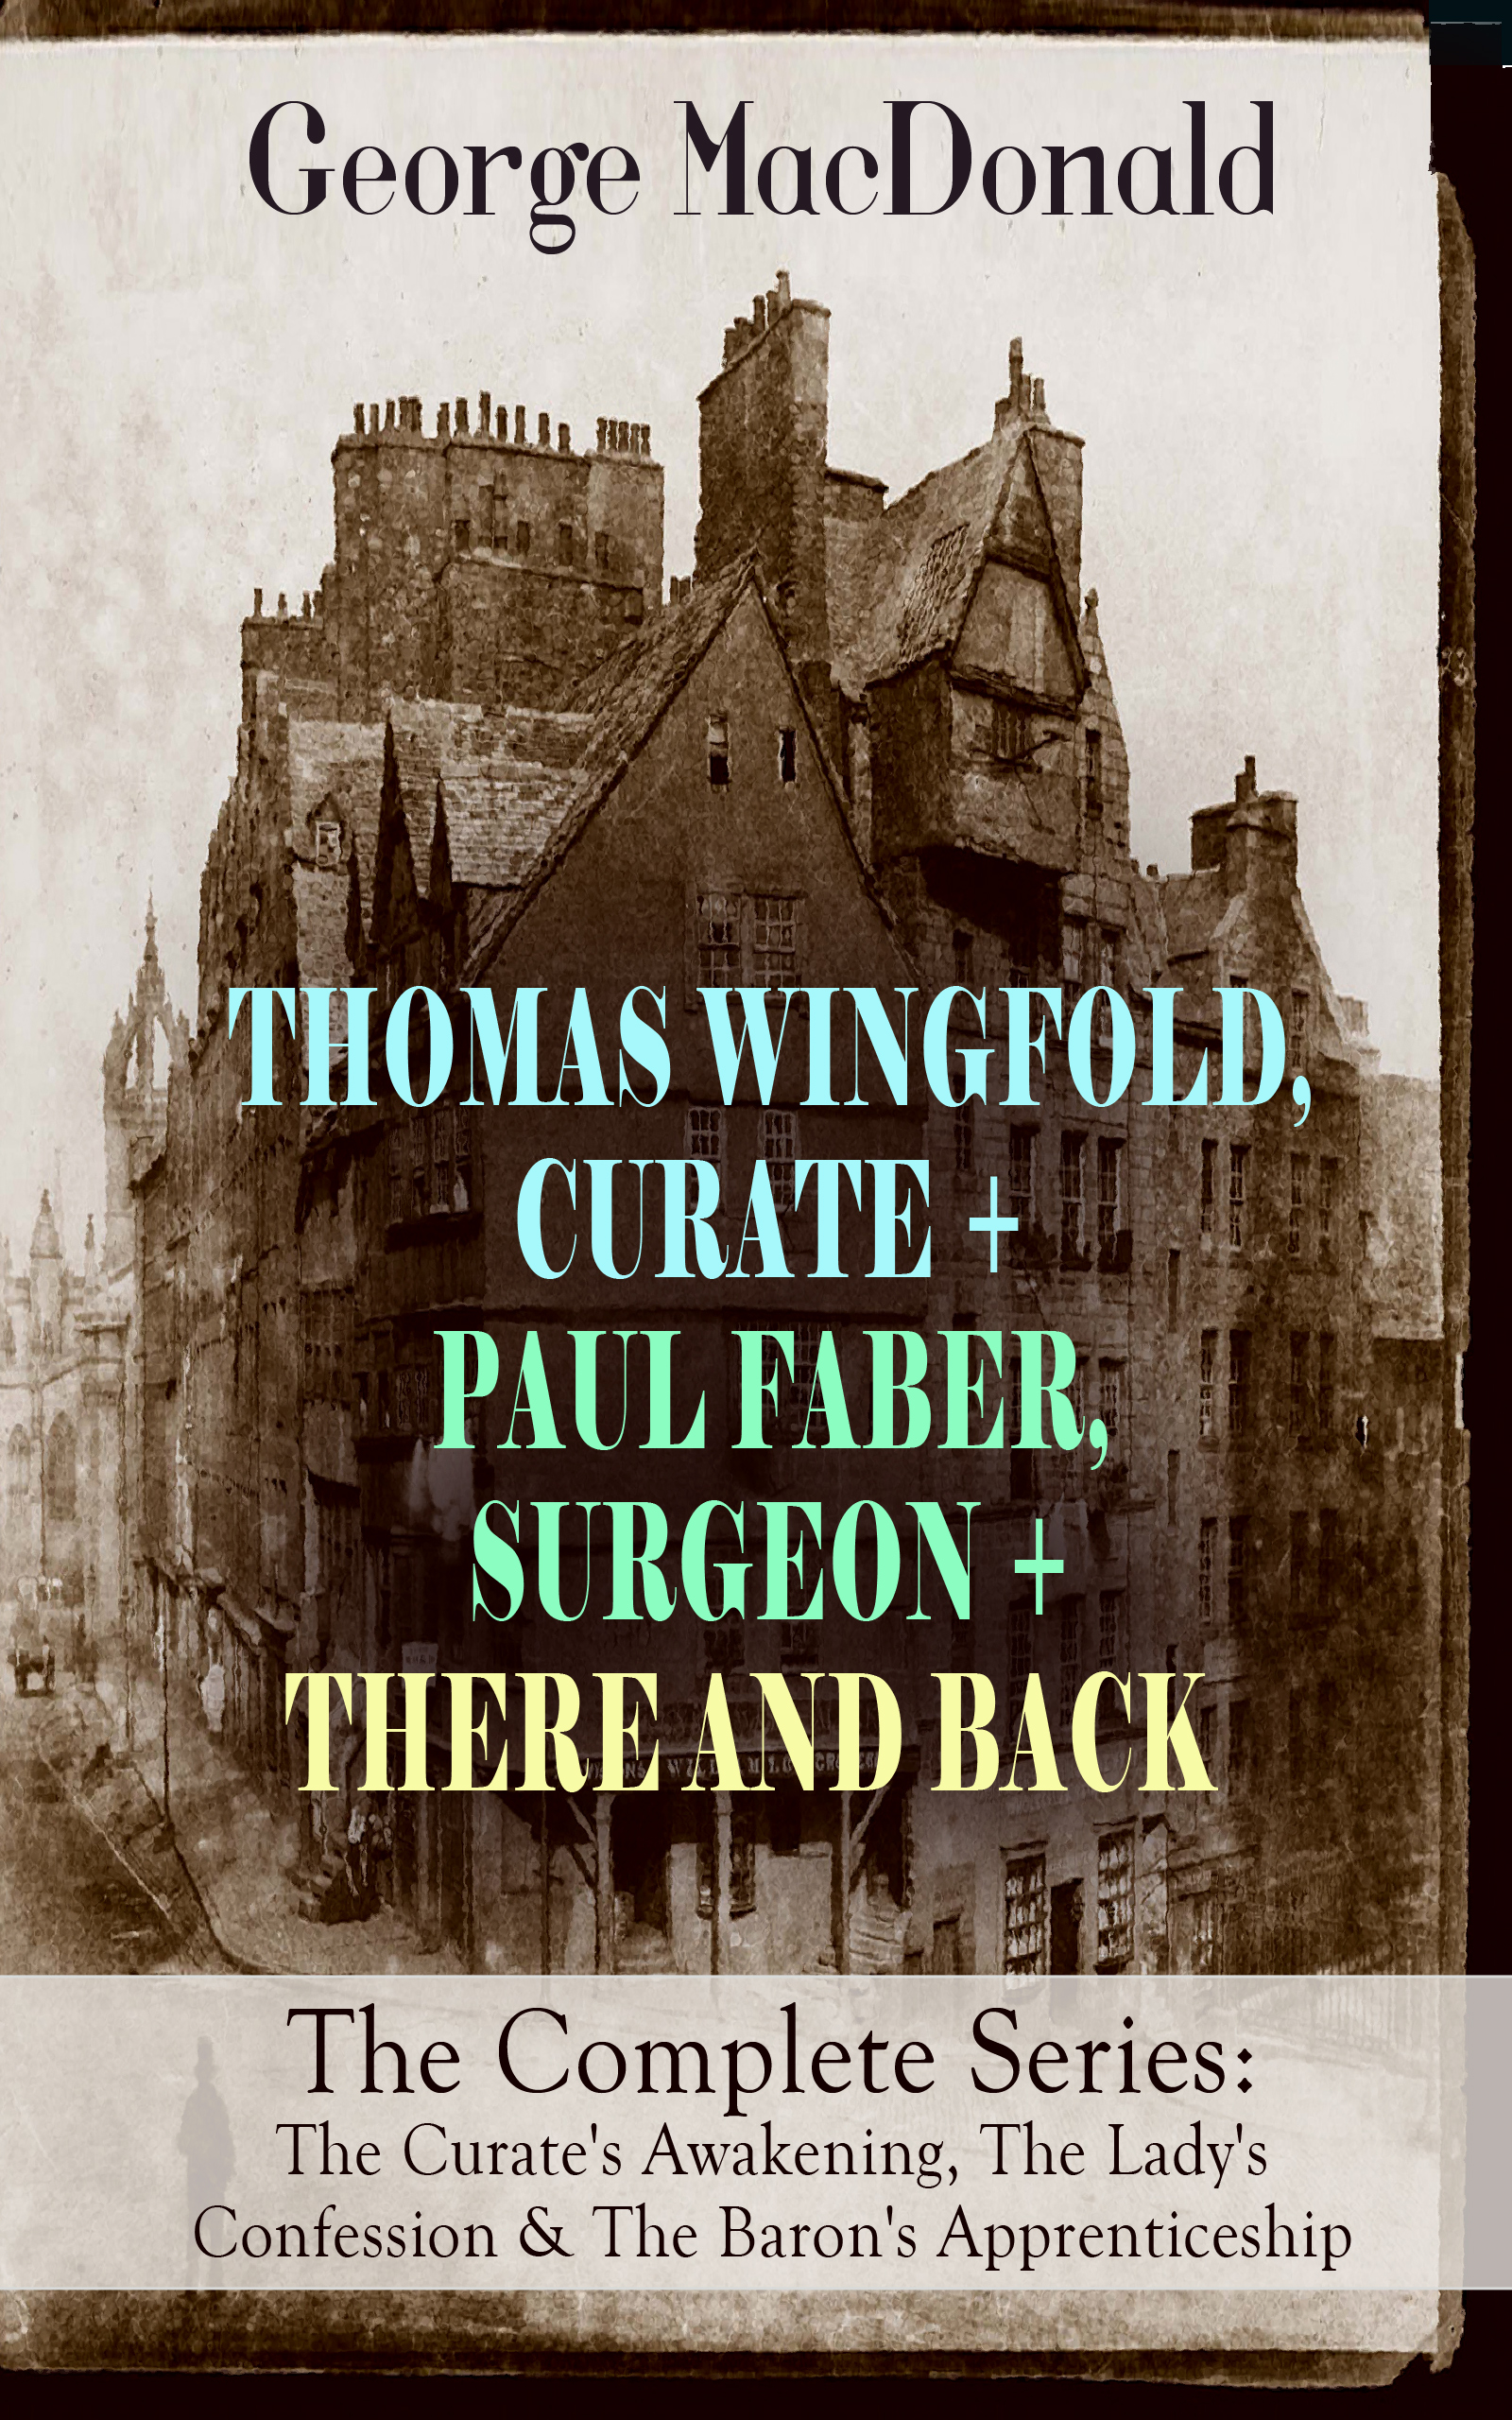 George MacDonald THOMAS WINGFOLD, CURATE + PAUL FABER, SURGEON + THERE AND BACK - The Complete Series: The Curate's Awakening, The Lady's Confession & The Baron's Apprenticeship the awakening